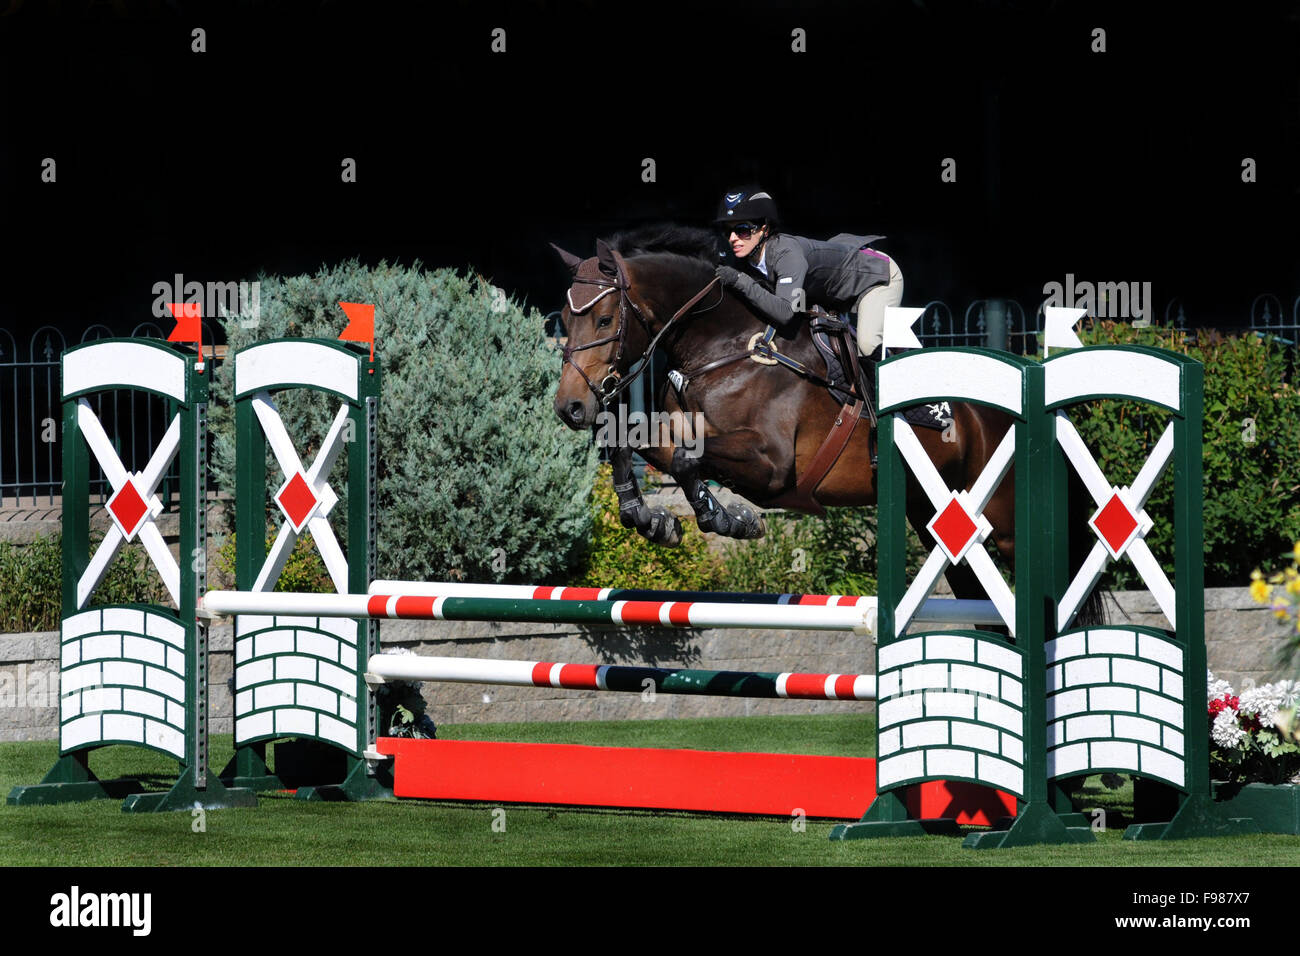 Horse show jumping, equestrian sports, sport horse, warm-blood, Jumper Ring - Stock Image